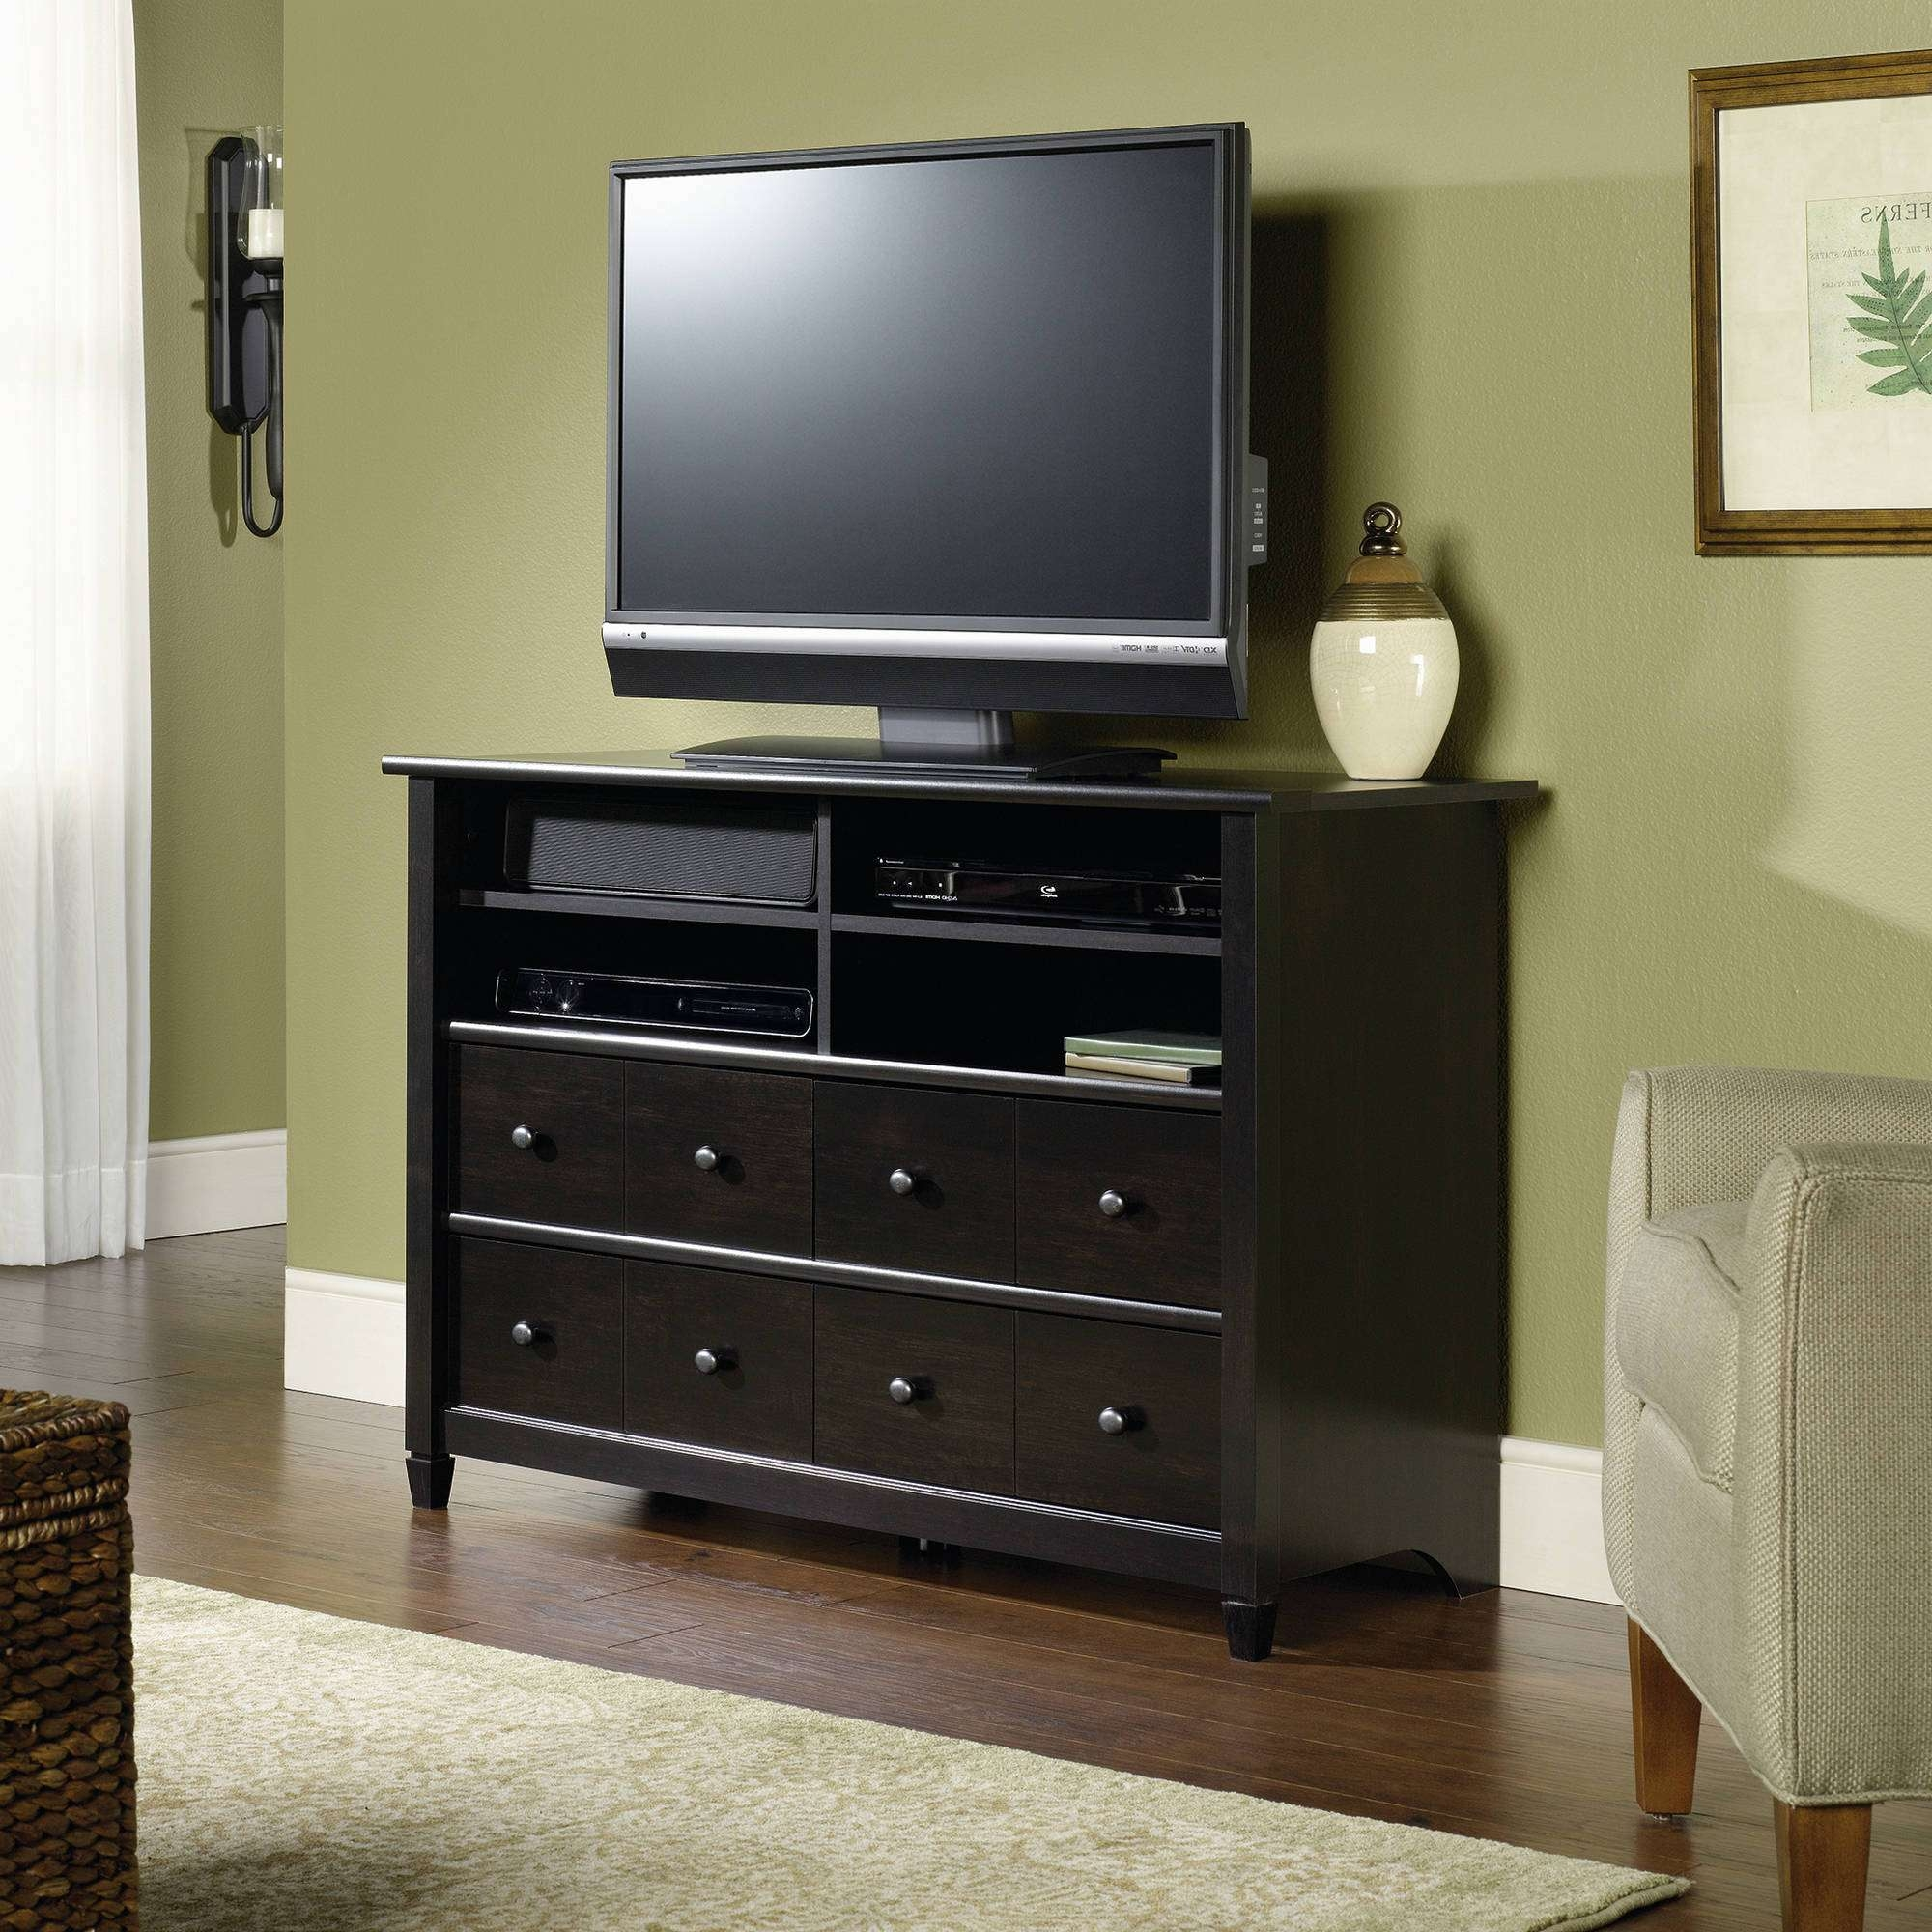 Living Room : Marvelous Costco Tv Stands For Flat Screens Corner With Regard To Tall Tv Stands For Flat Screen (View 14 of 15)